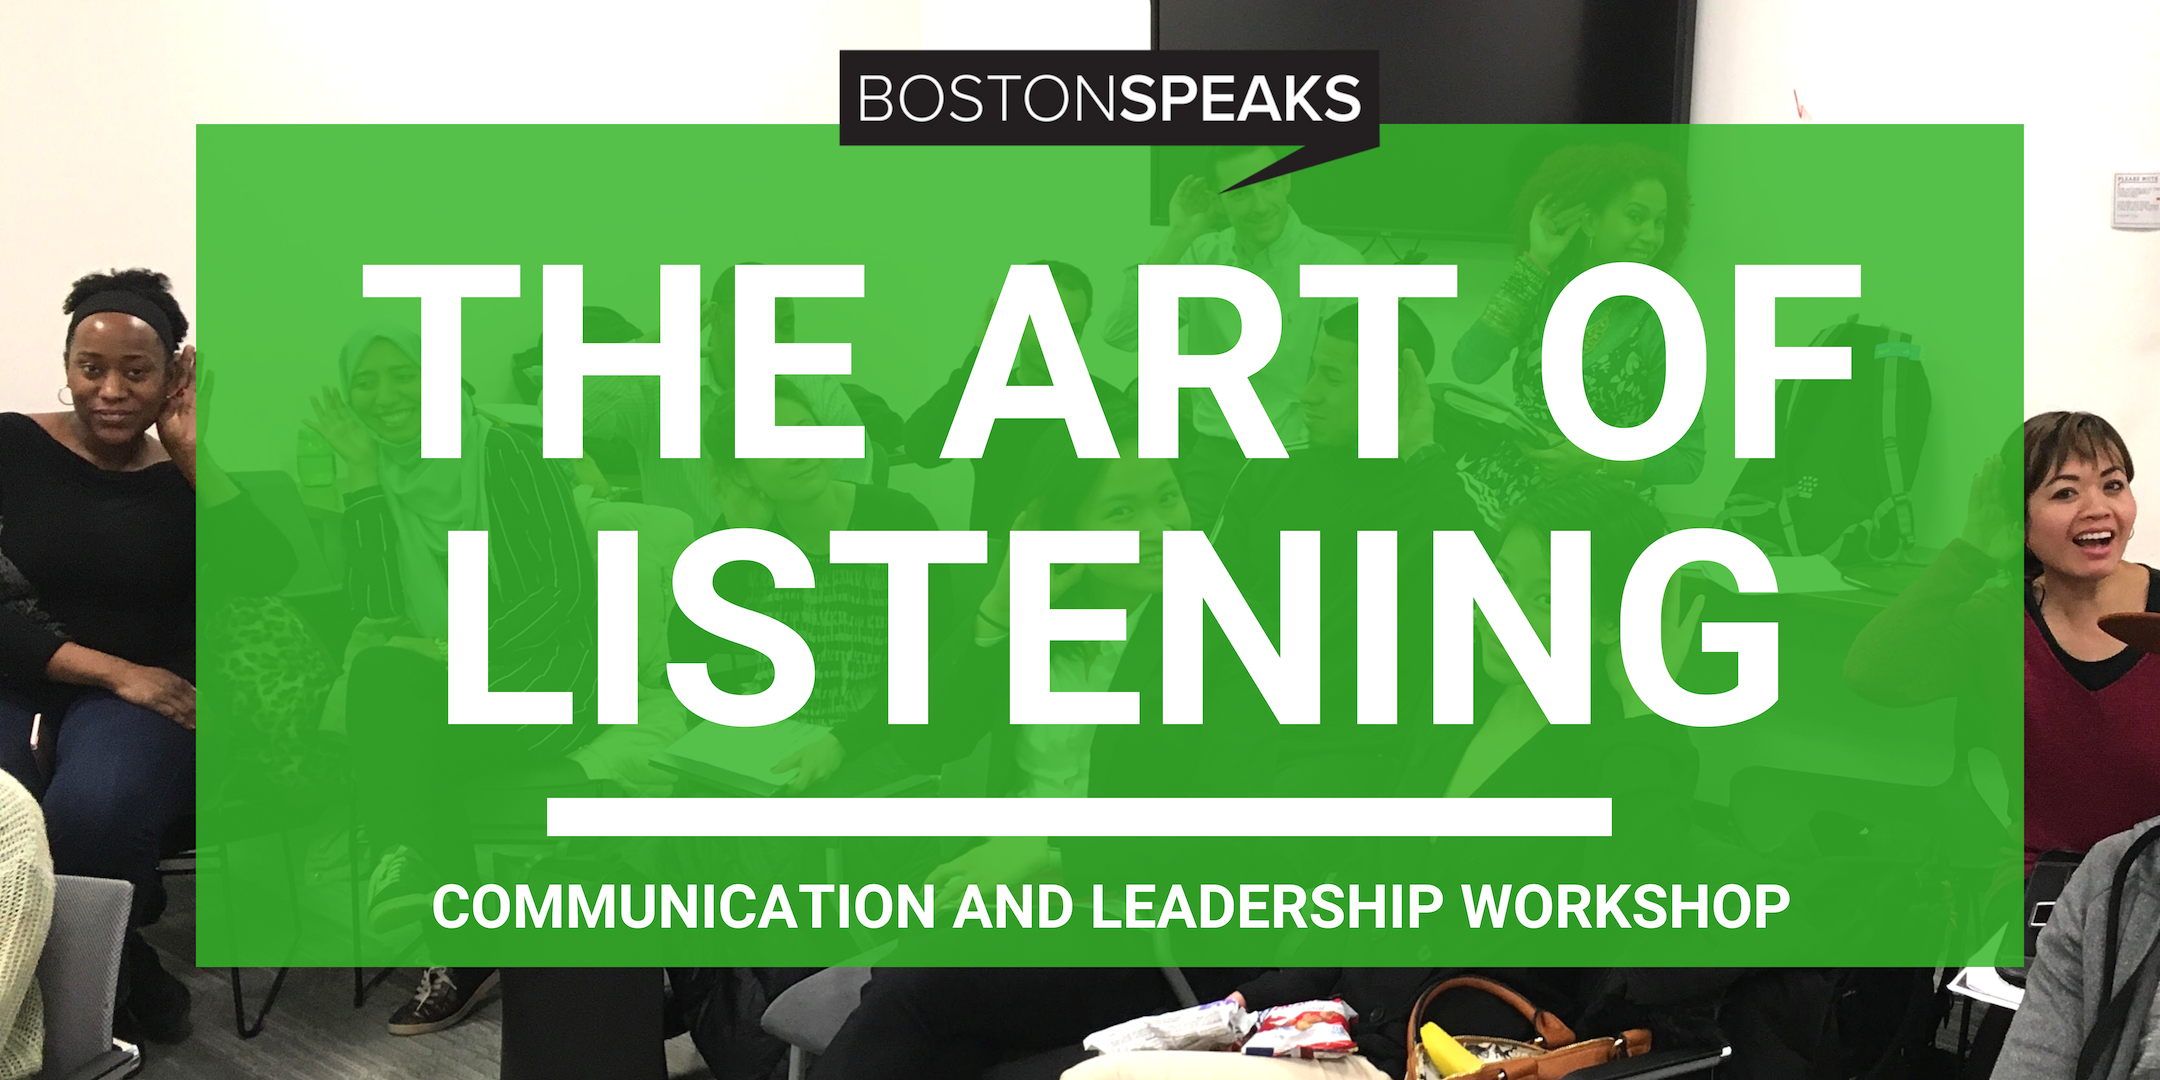 What Did You Say Again? - ATTEND OUR FREE BROWN-BAG LUNCHTIME COMMUNICATION AND LEADERSHIP SEMINAR TO DISCOVER THE POWER OF LISTENING. (1 HR 30 MIN WORKSHOP)